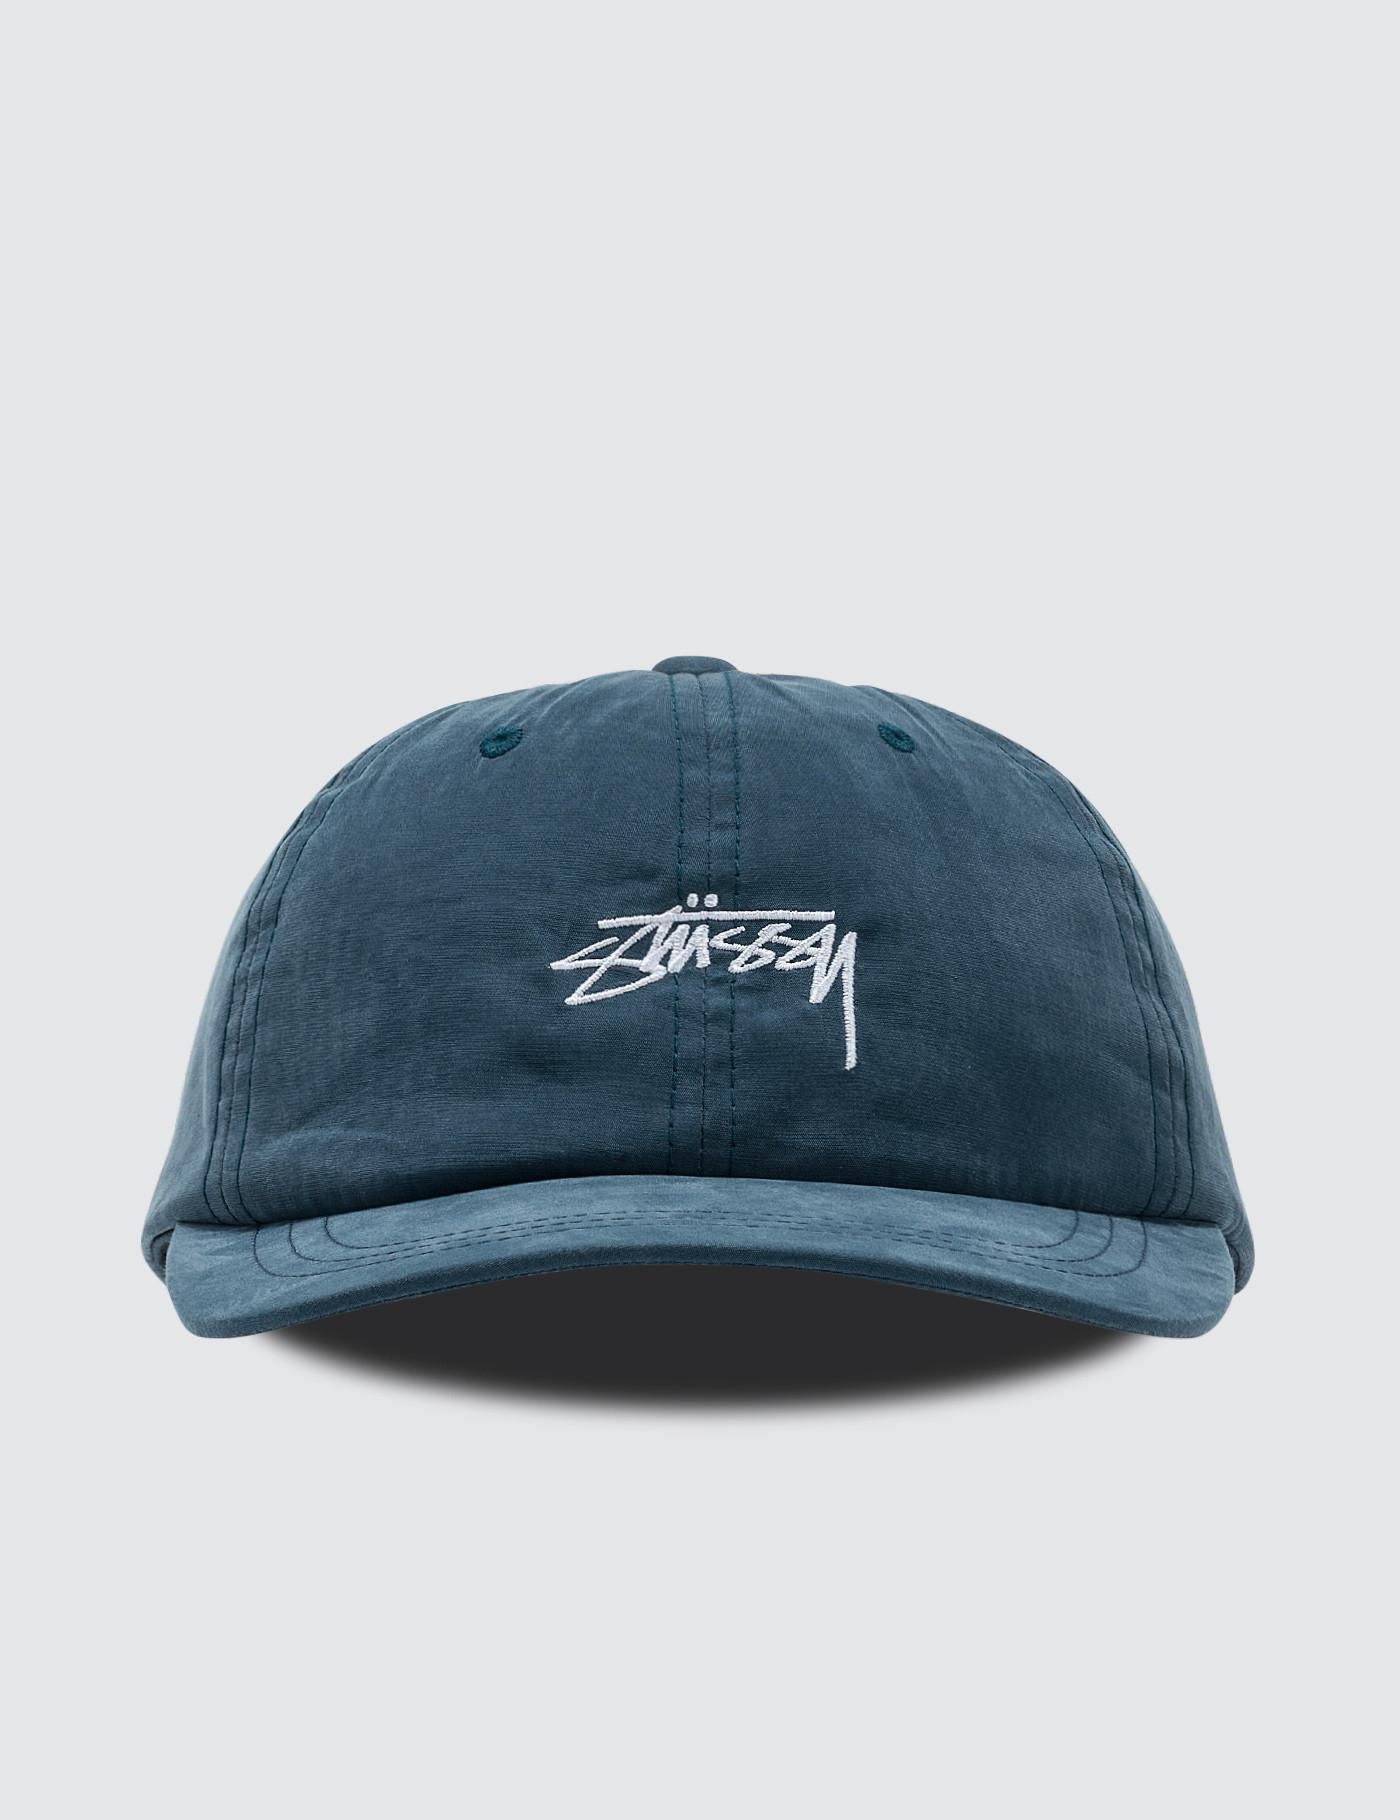 ecebd802720 Lyst - Stussy Peached Smooth Stock Low Pro Cap in Blue for Men